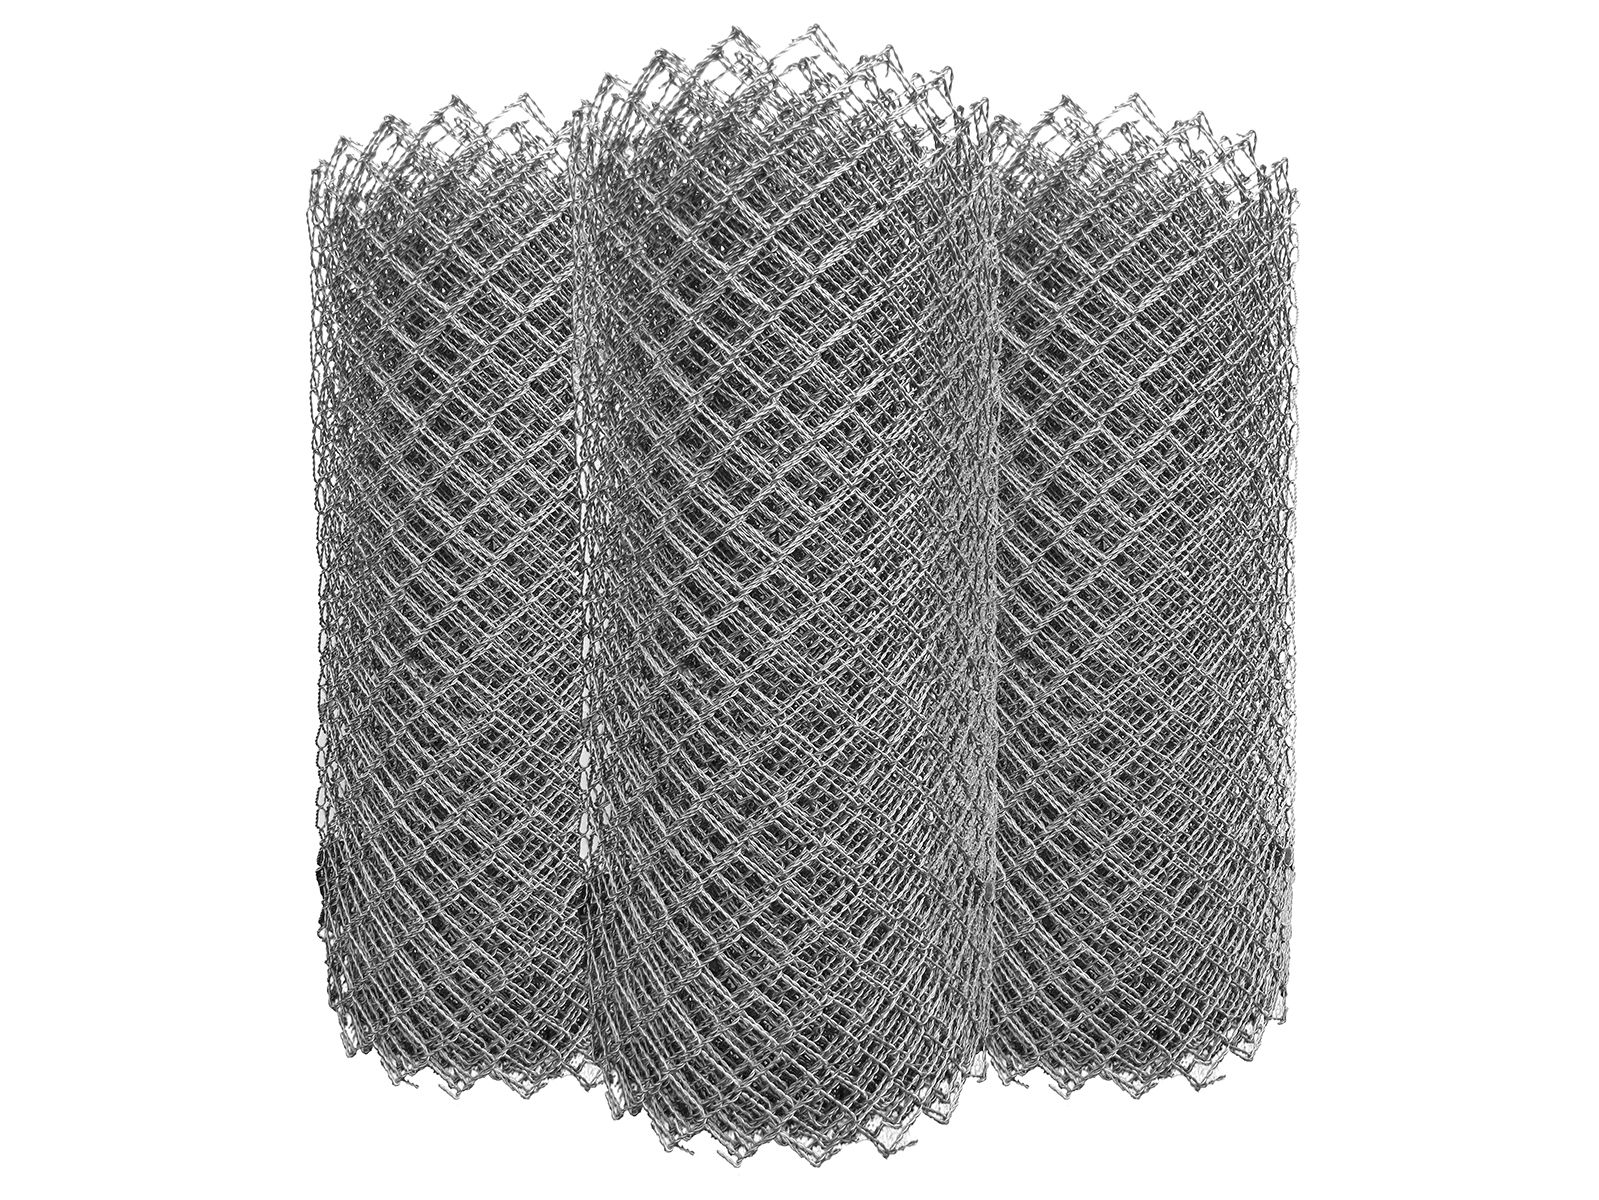 Hexagonal Knitted wire